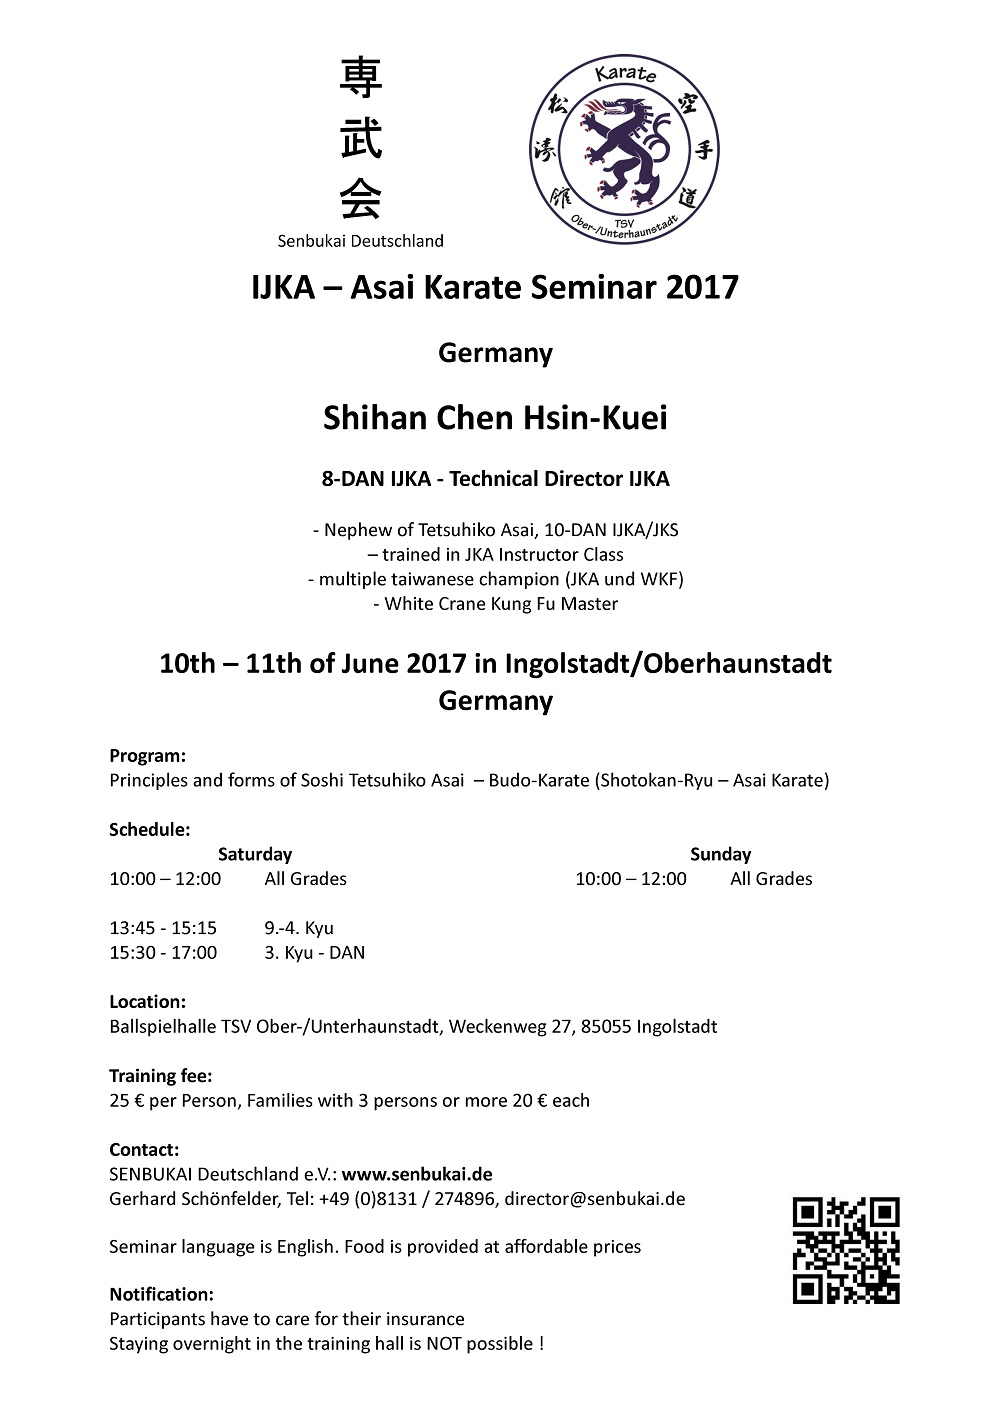 IJKA-Asai Karate Seminar 2017 Germany